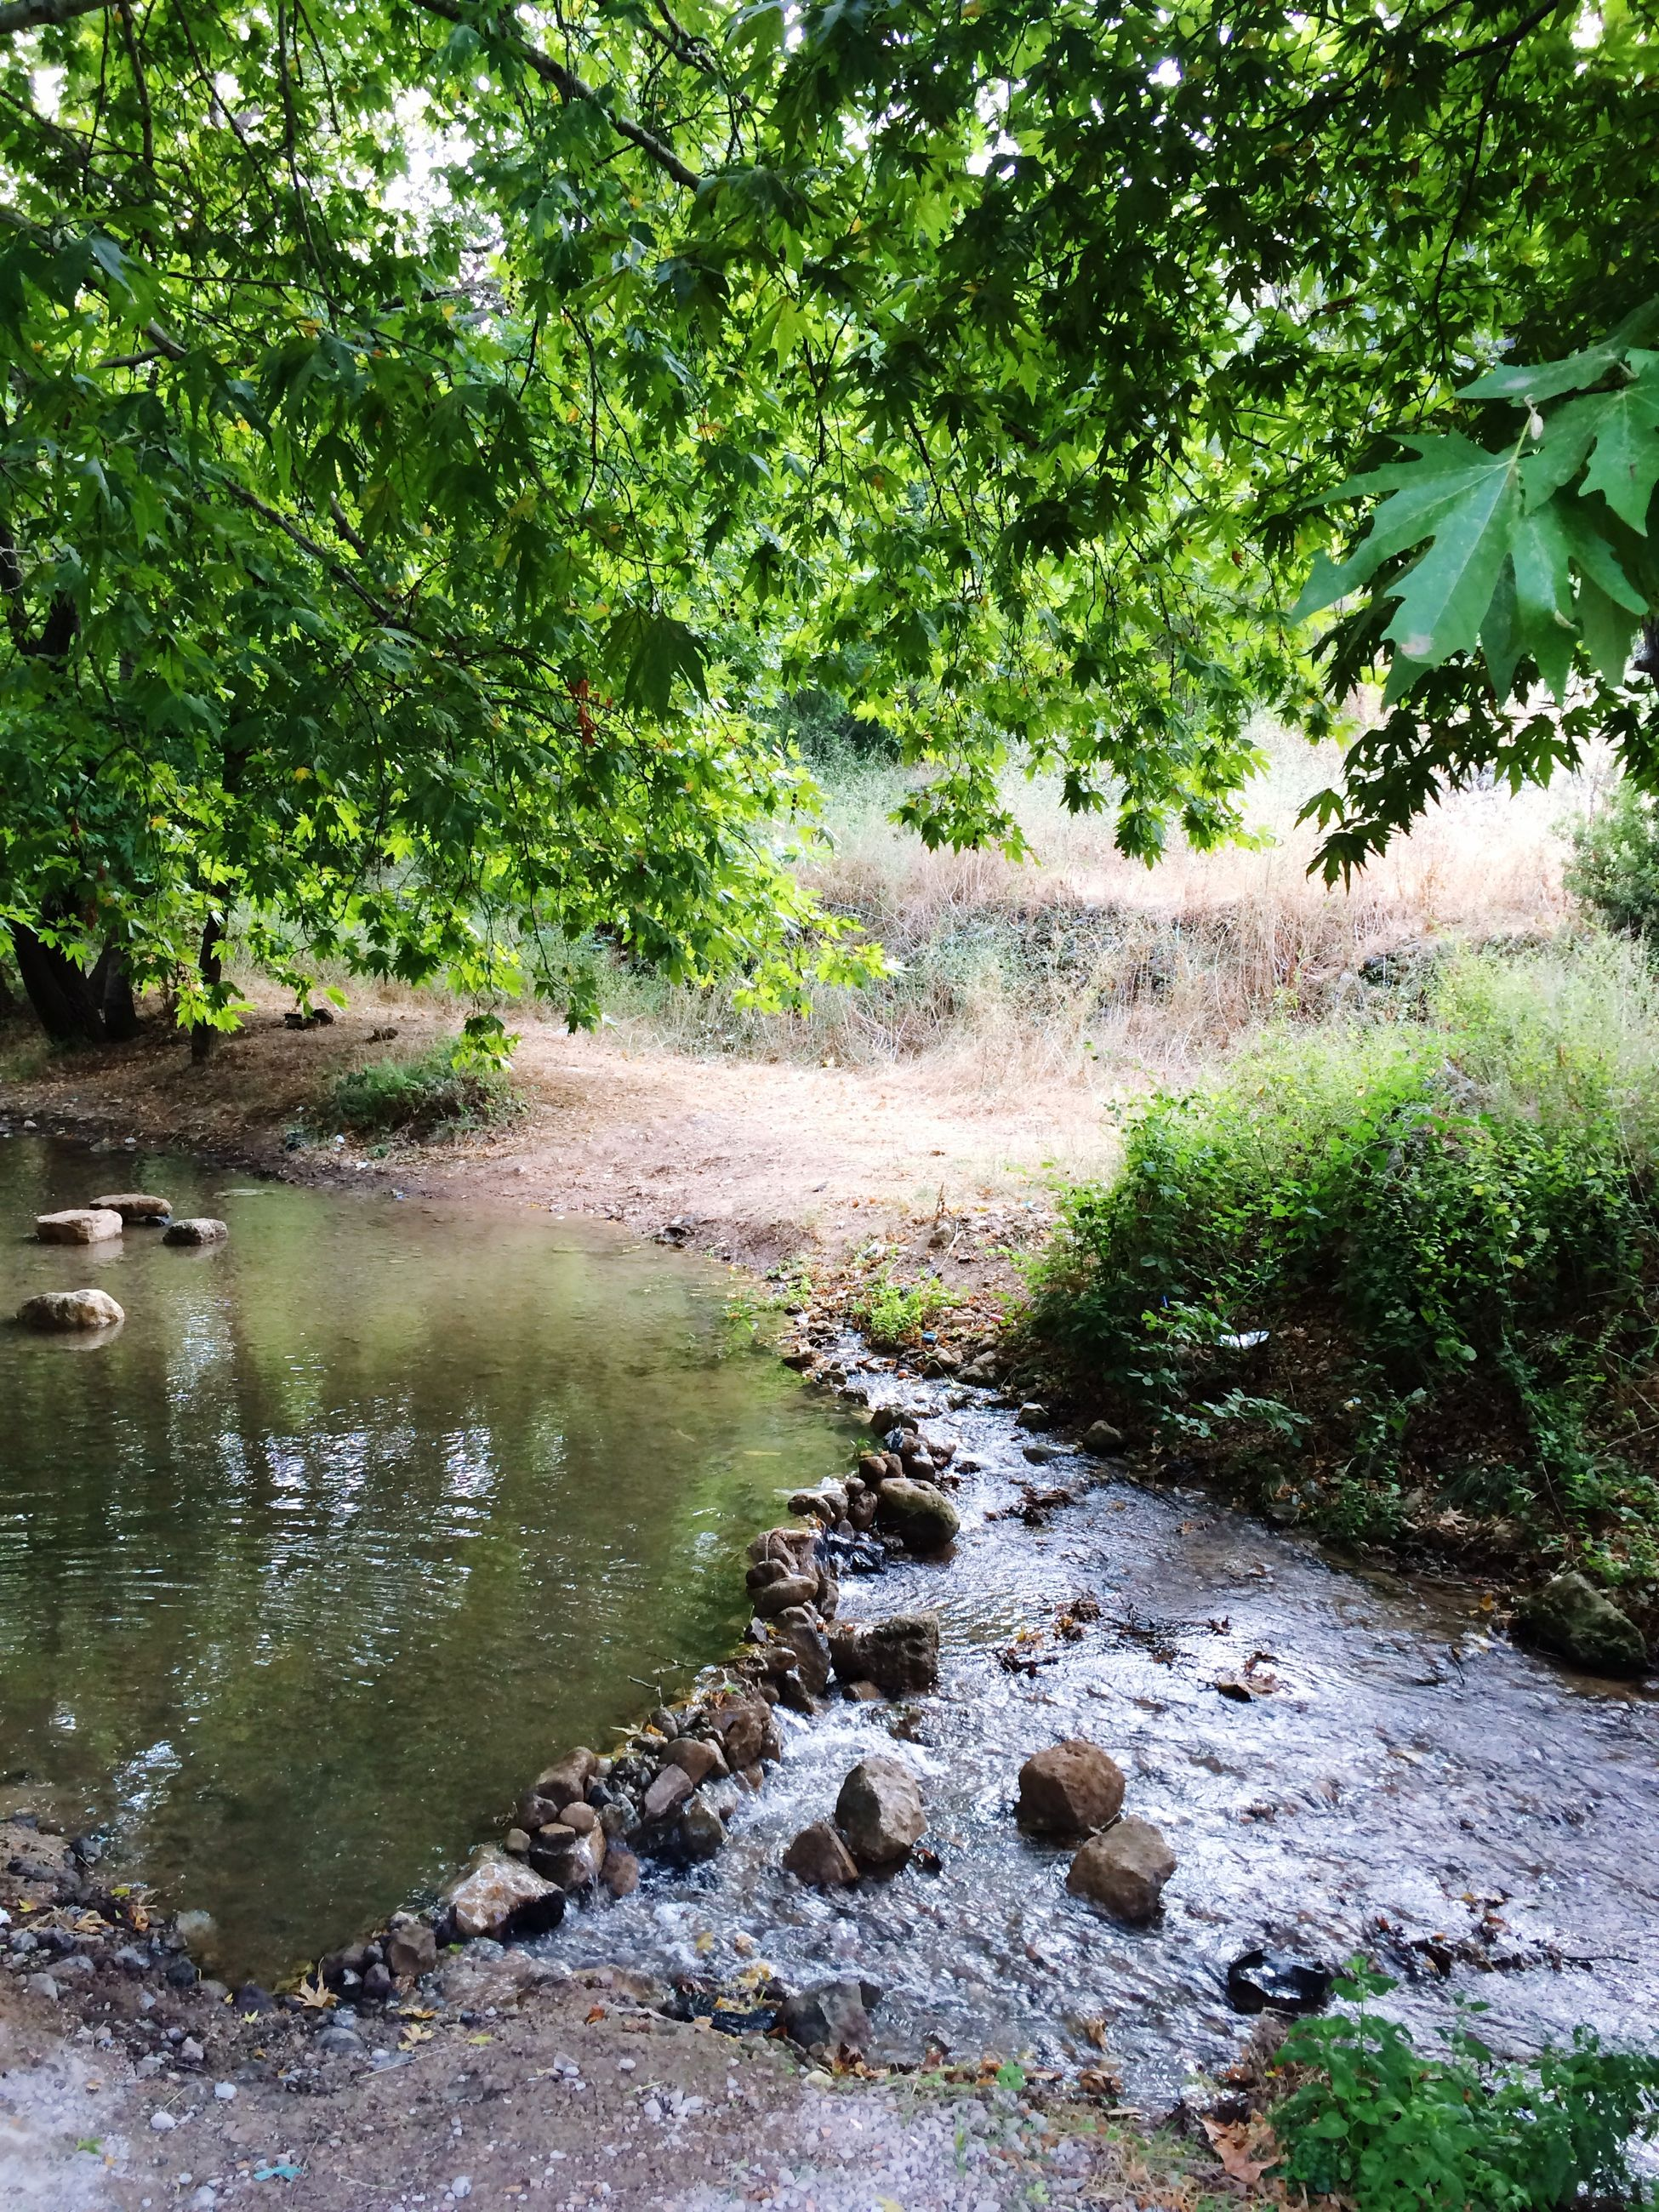 water, tree, green color, growth, tranquility, stream, nature, tranquil scene, beauty in nature, scenics, river, plant, rock - object, forest, flowing, branch, day, outdoors, waterfront, idyllic